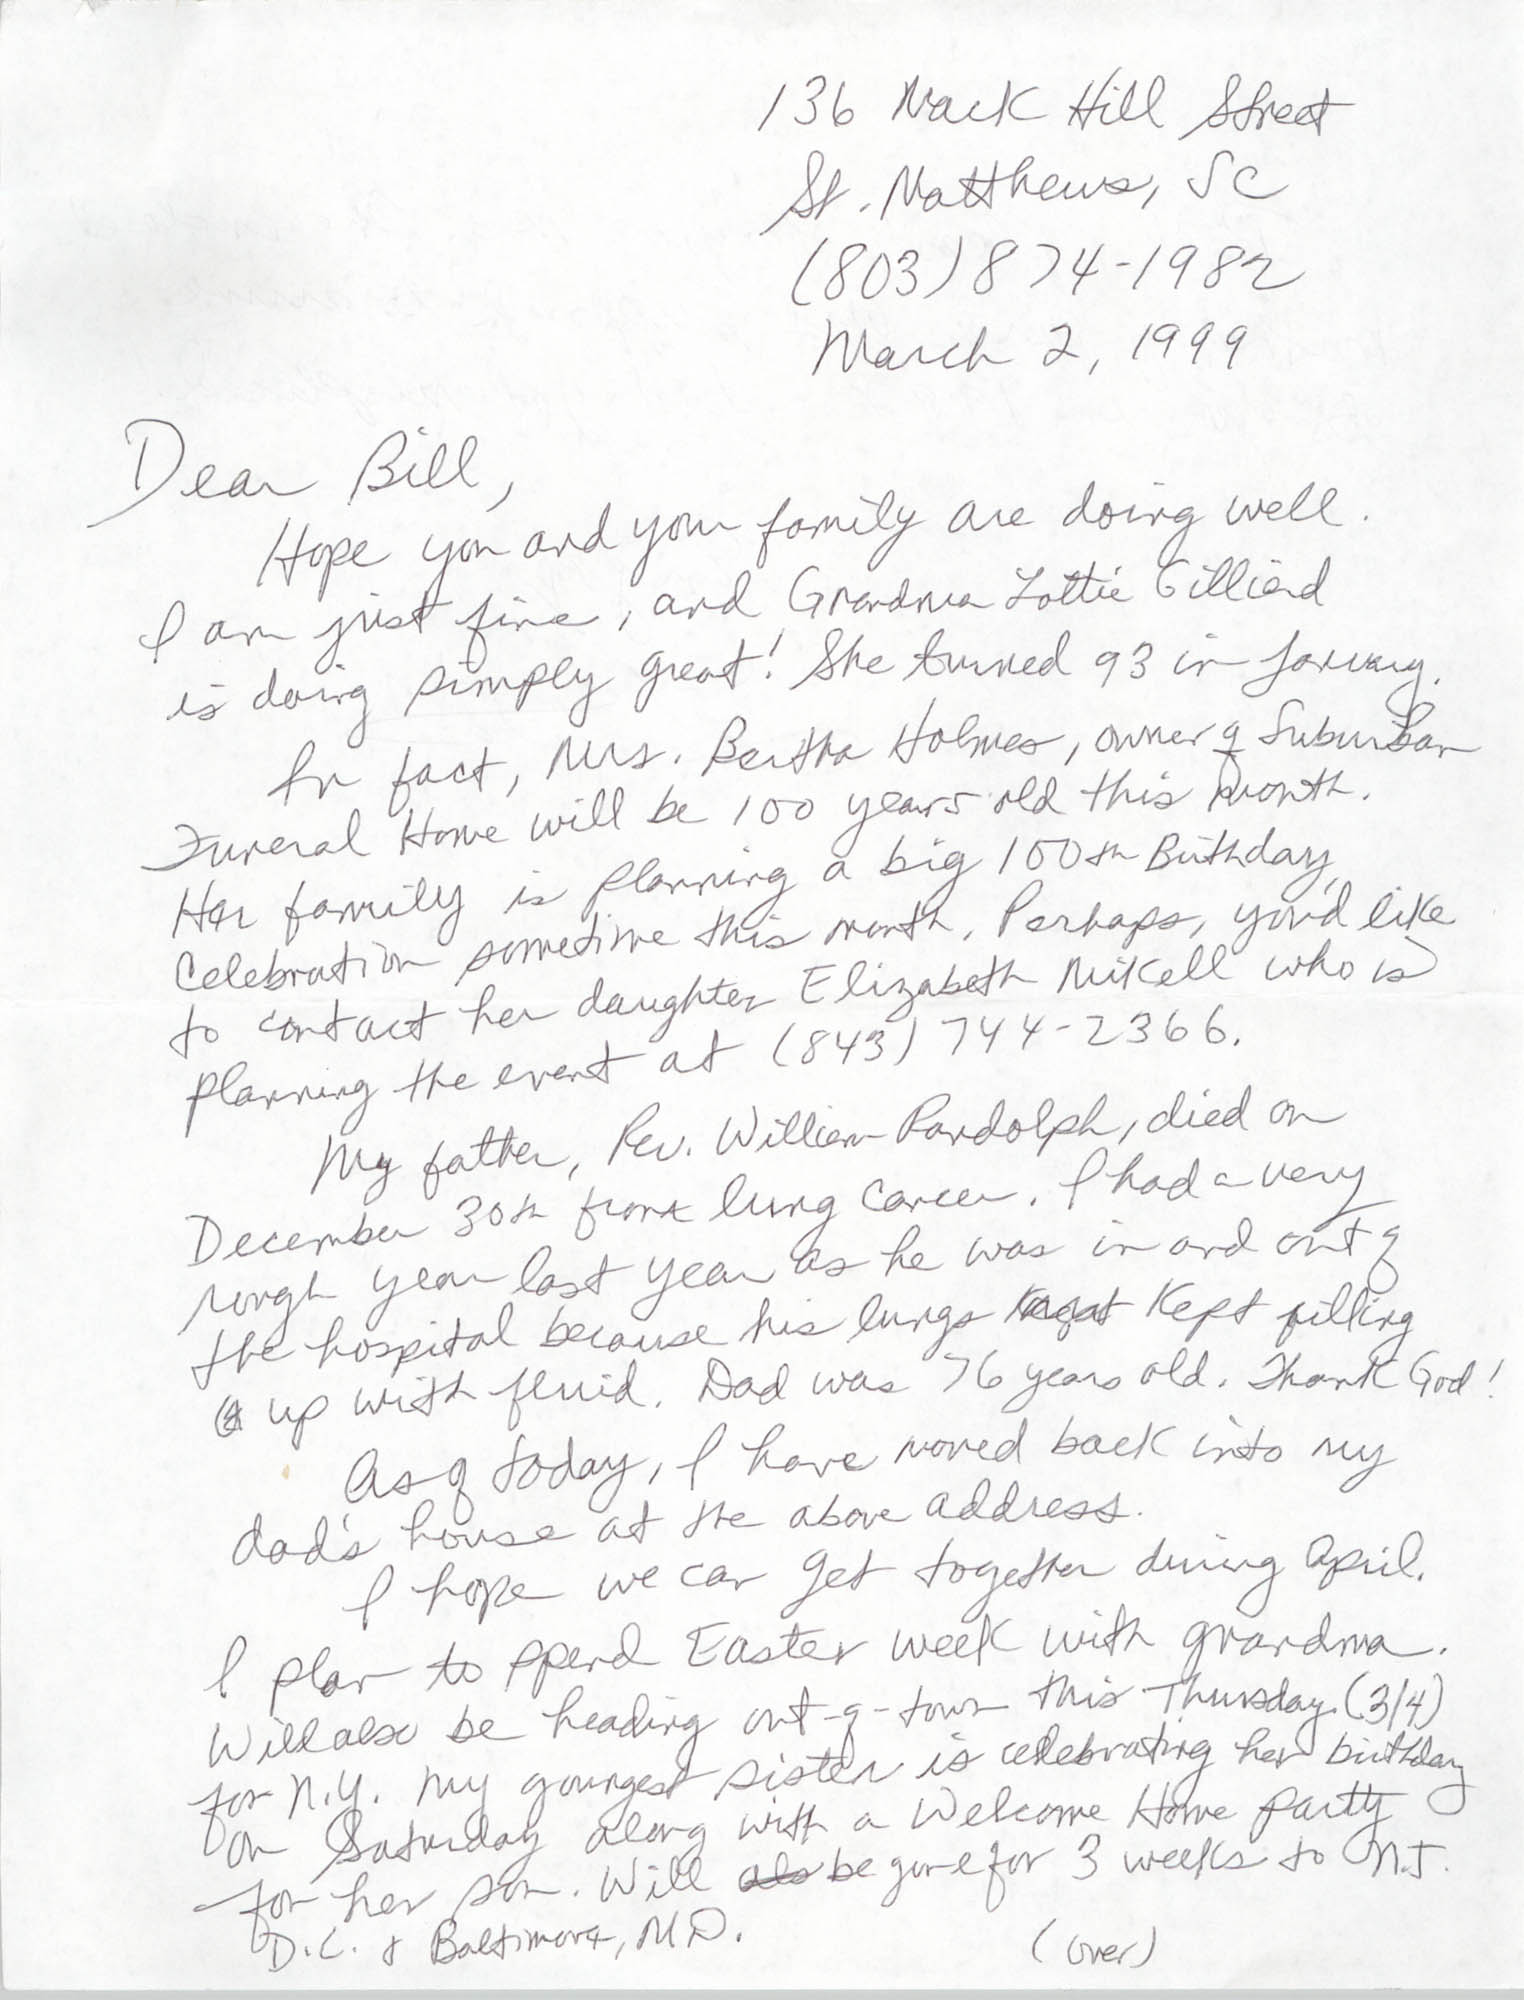 Letter from Malcolm D. Haven to William Saunders, March 2, 1999